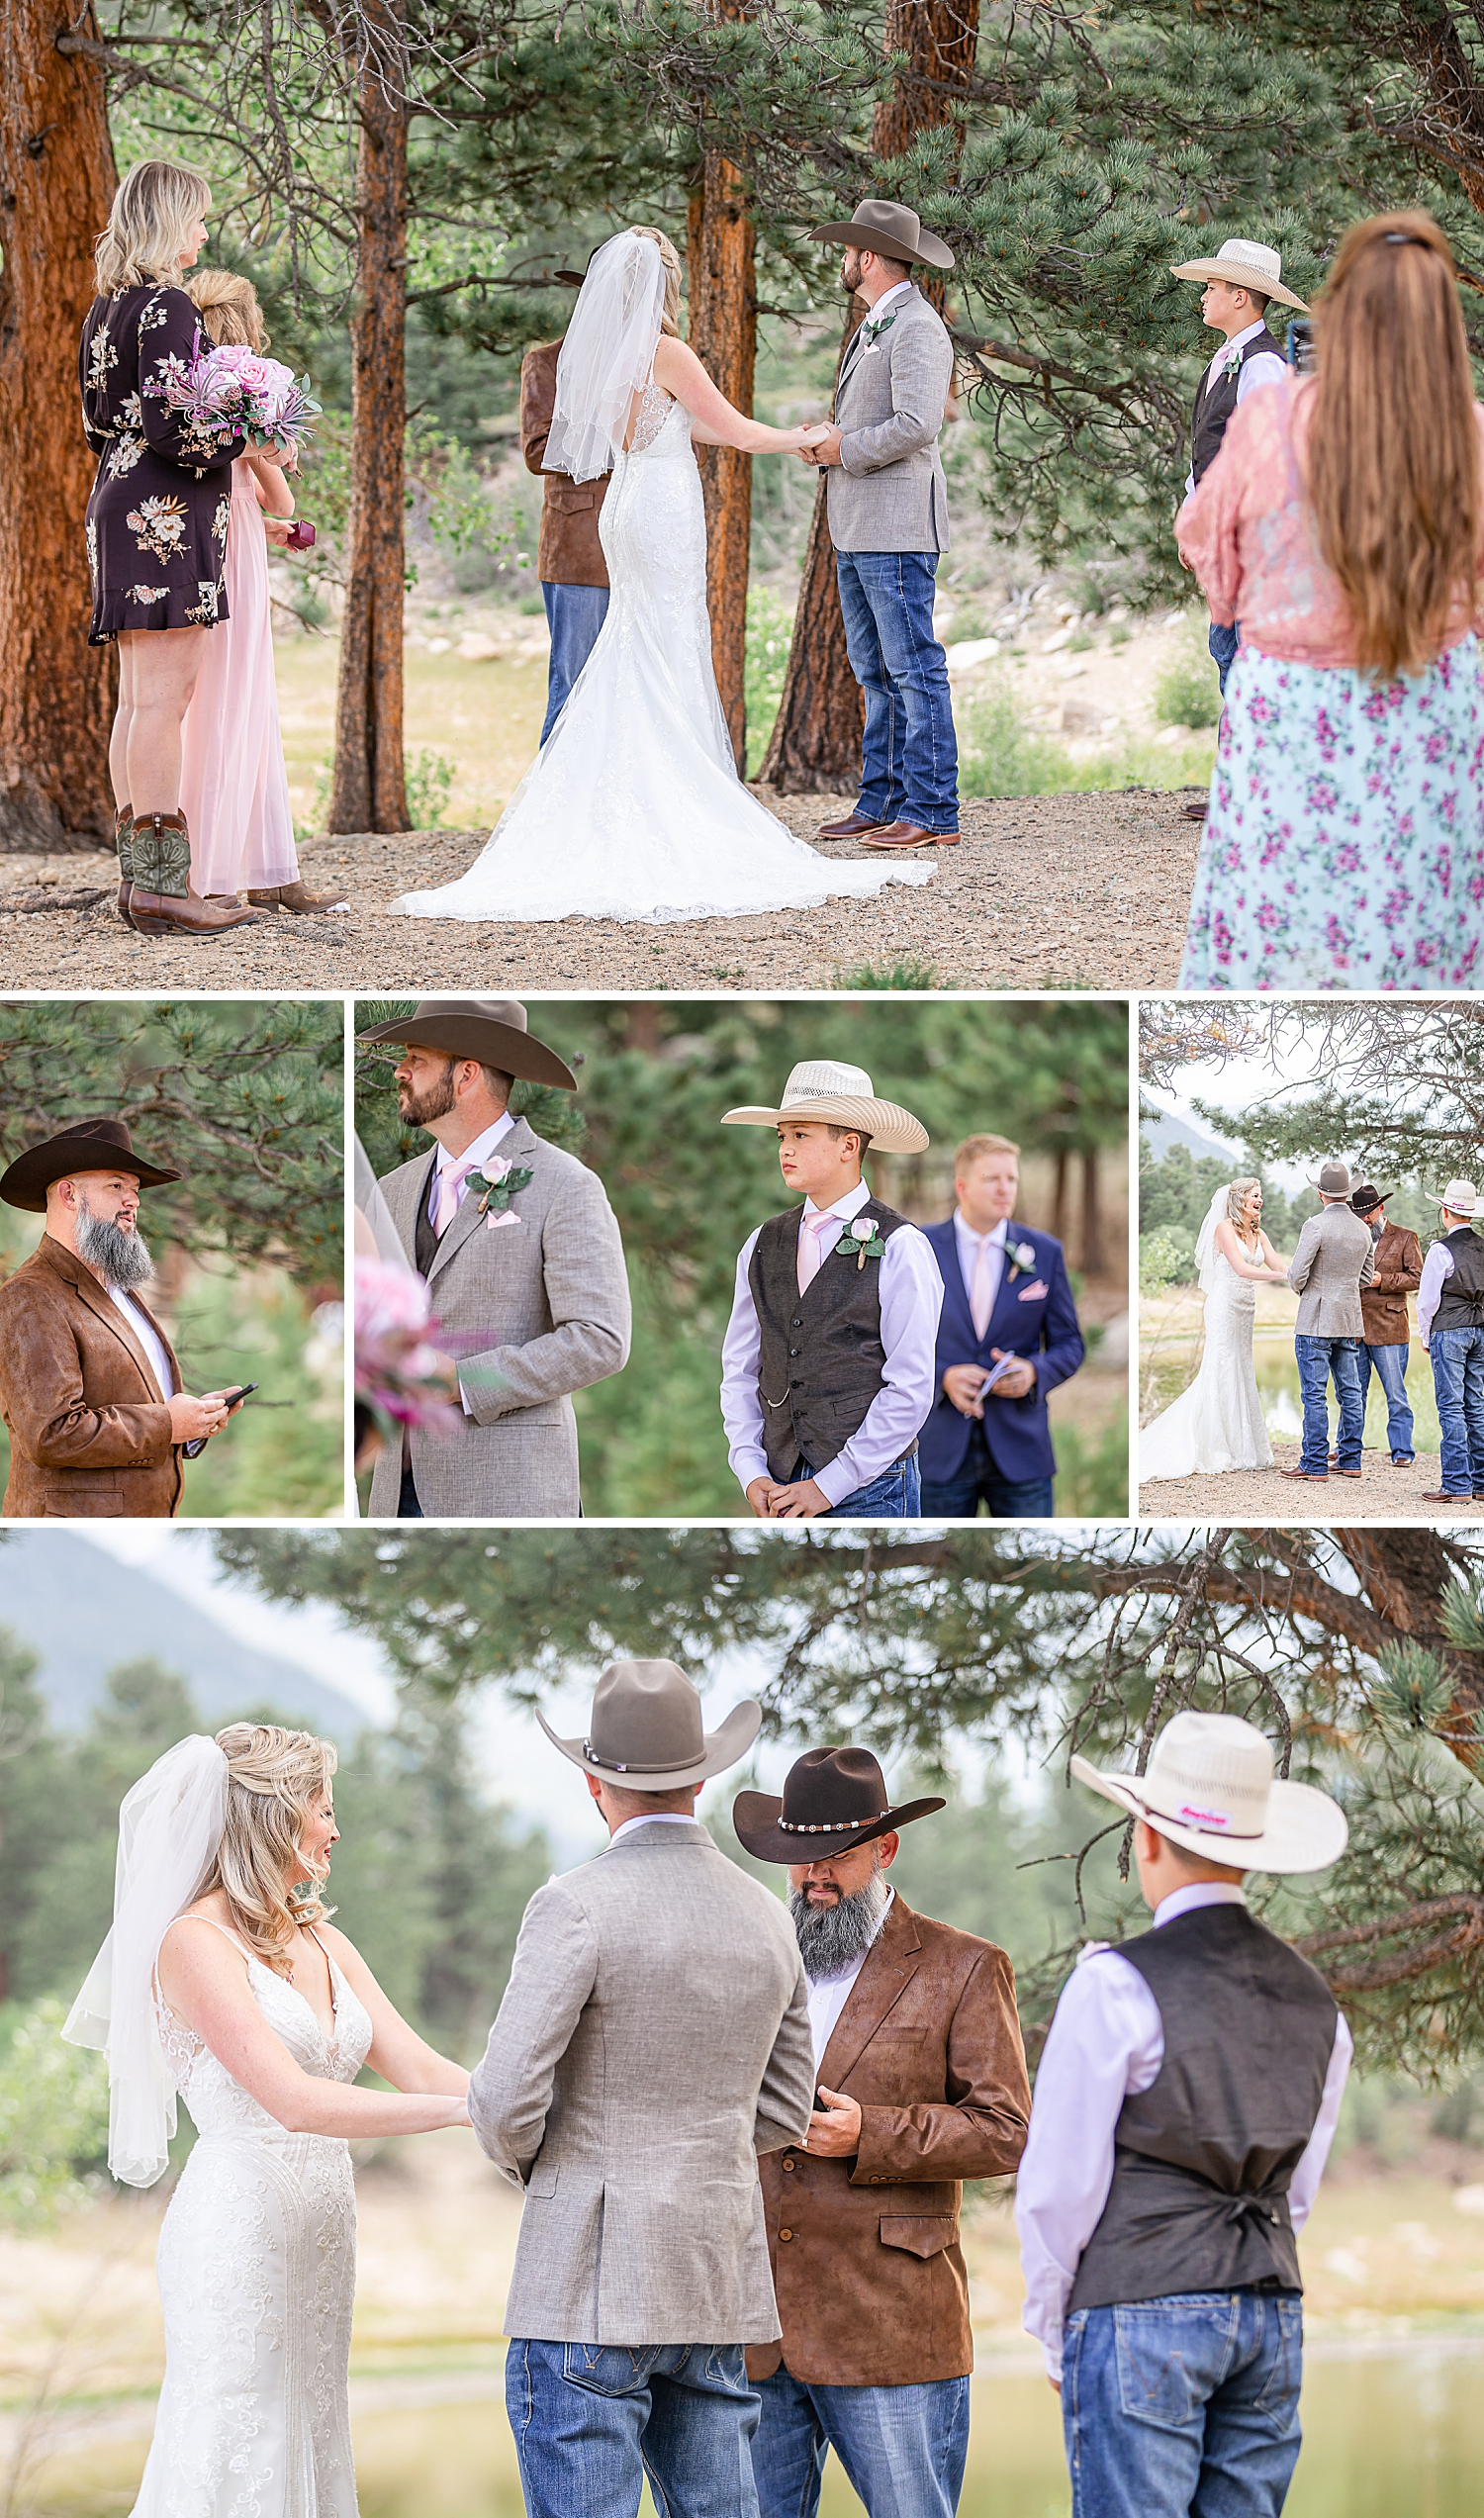 Carly-Barton-Photography-Rocky-Mountain-National-Park-Estes-Park-Wedding-Elopement_0090.jpg